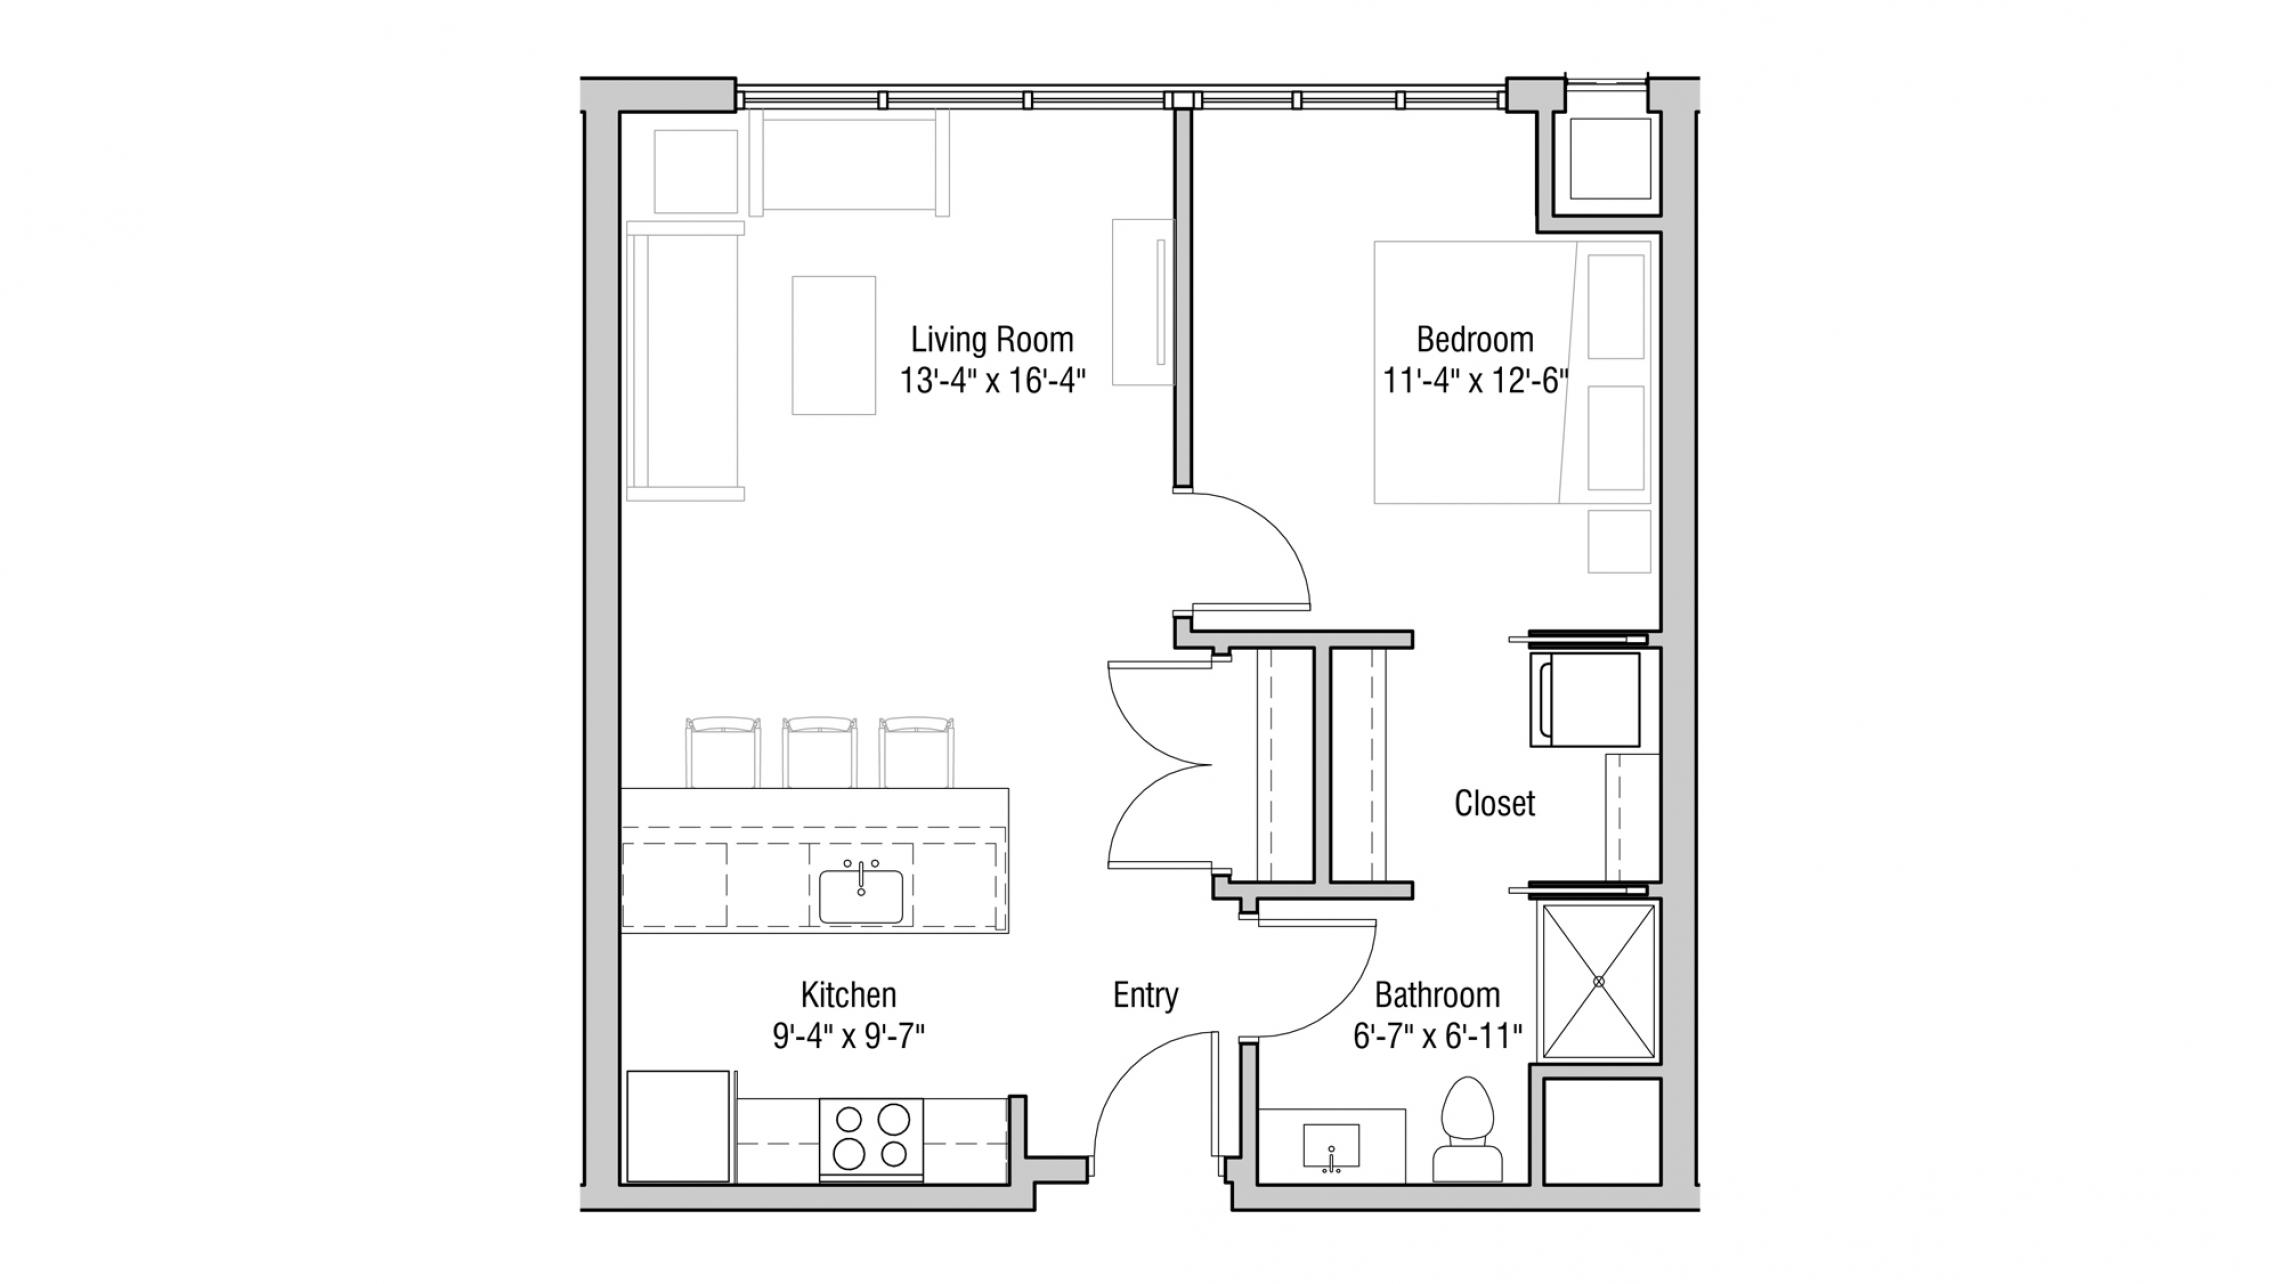 ULI Quarter Row 223 - One Bedroom, One Bathroom